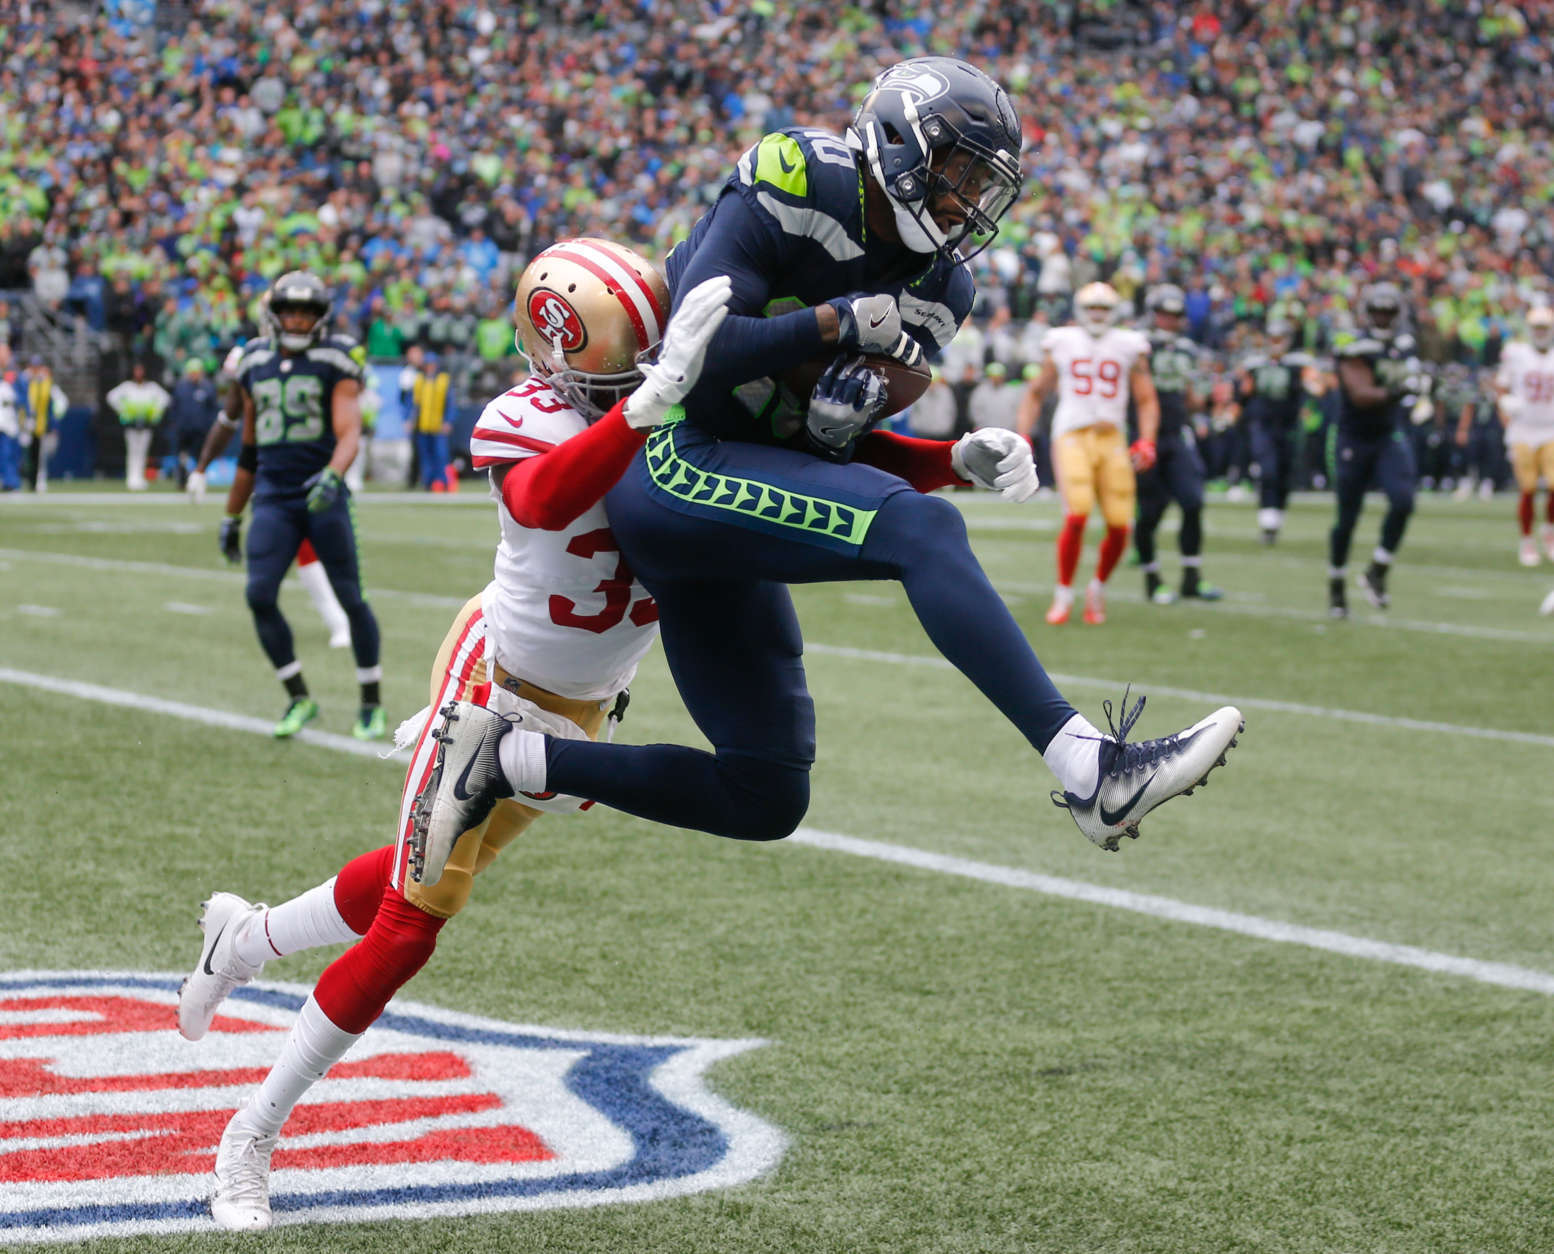 SEATTLE, WA - SEPTEMBER 17: Wide receiver Paul Richardson #10 of the Seattle Seahawks beats cornerback Rashard Robinson #33 of the San Francisco 49ers to score a 9 yard touchdown during the fourth quarter of the game at CenturyLink Field on September 17, 2017 in Seattle, Washington. (Photo by Stephen Brashear/Getty Images)